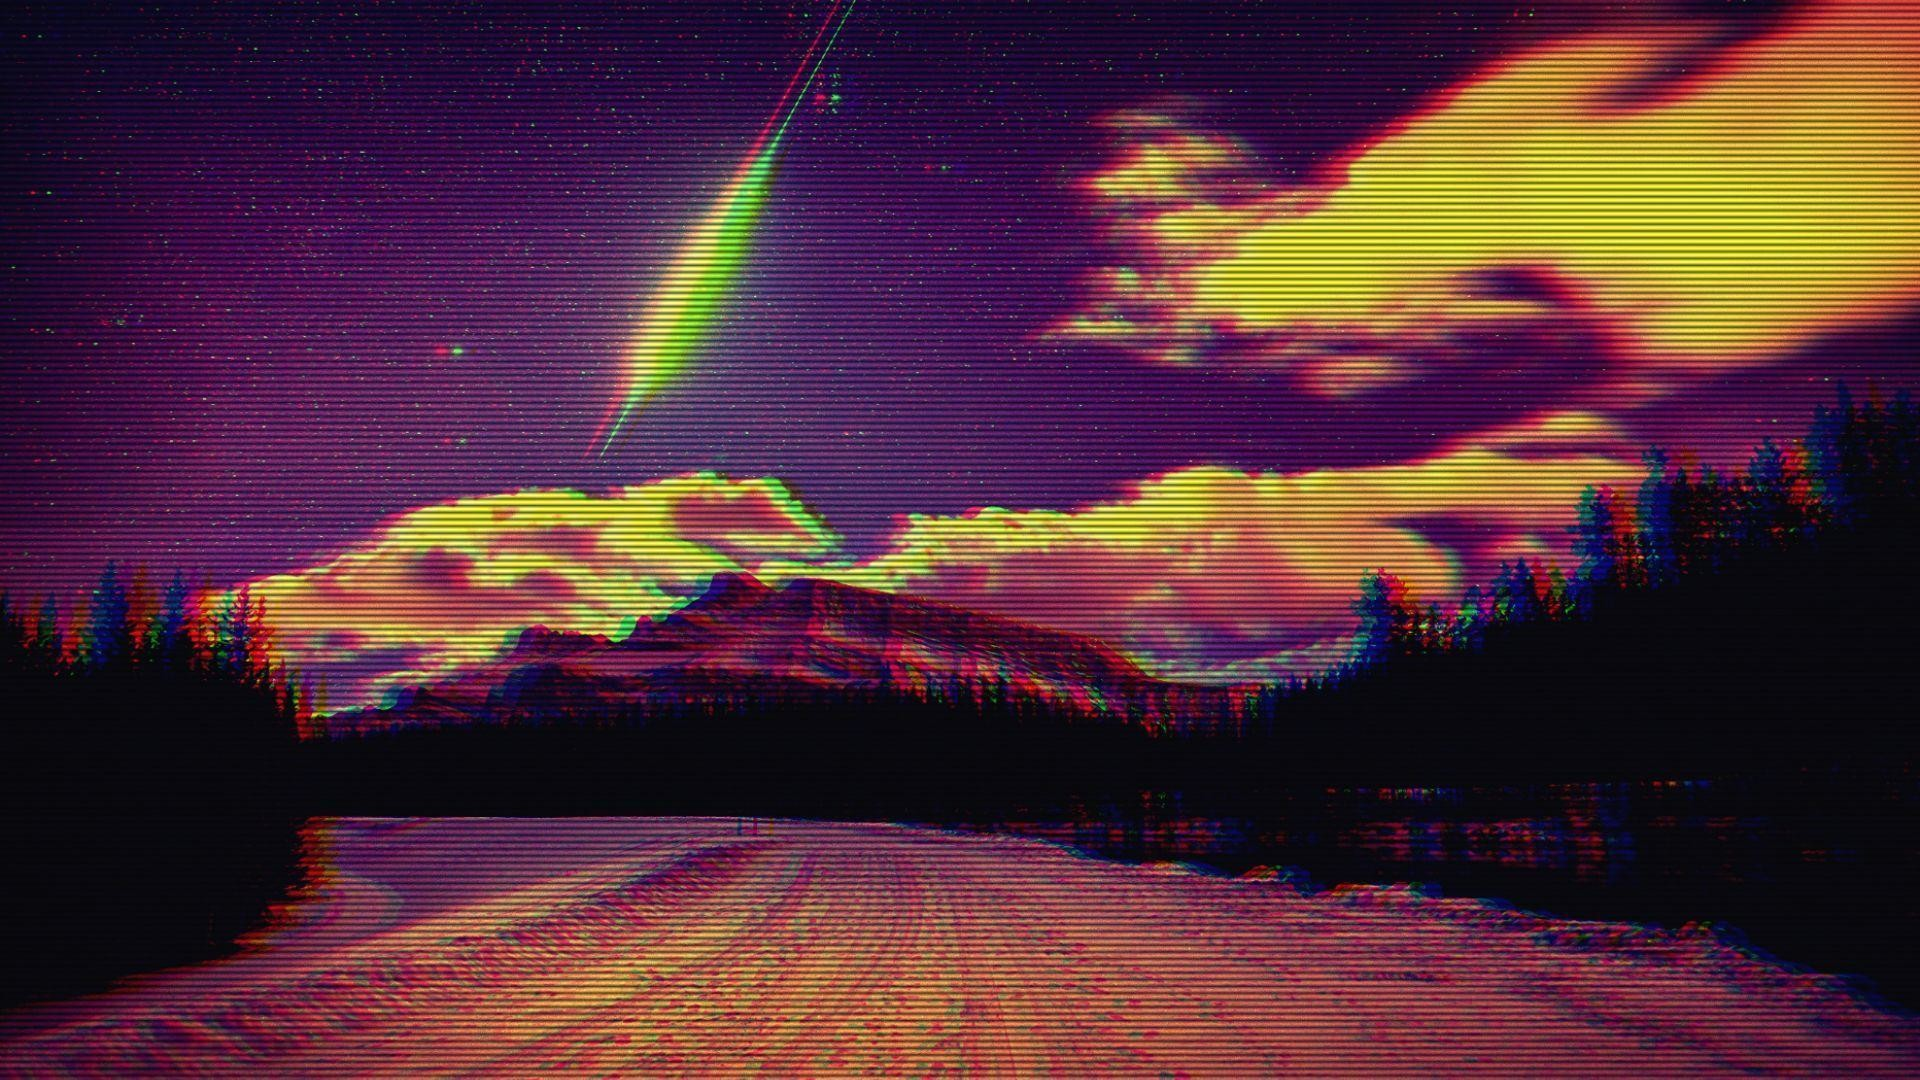 1920x1080 Hd Wallpaper Background Image: Glitch Wallpapers (75+ Background Pictures